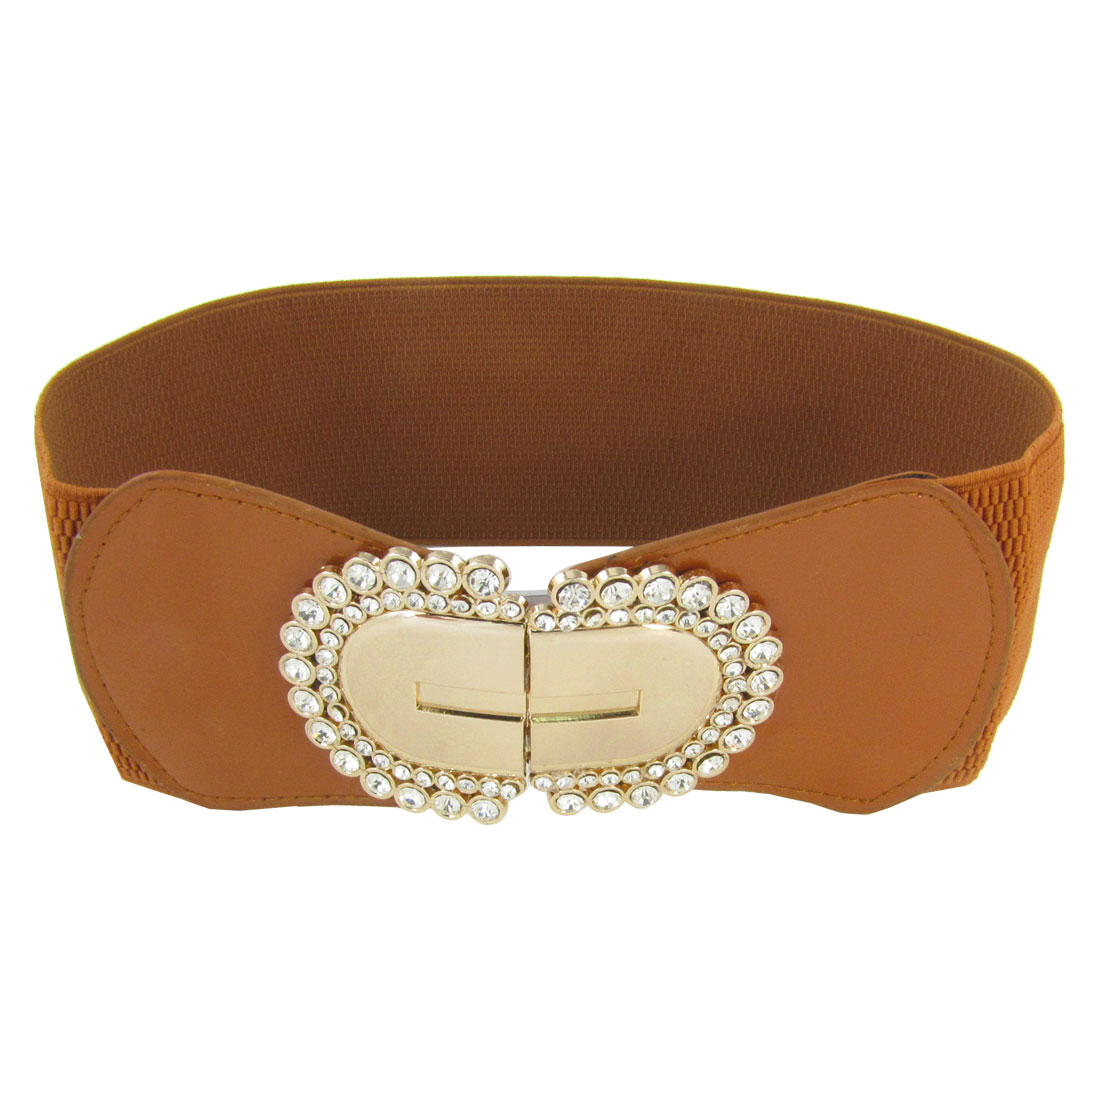 Metal Interlocking Buckle 7.3cm Width Stretchy Waist Belt Brown for Lady